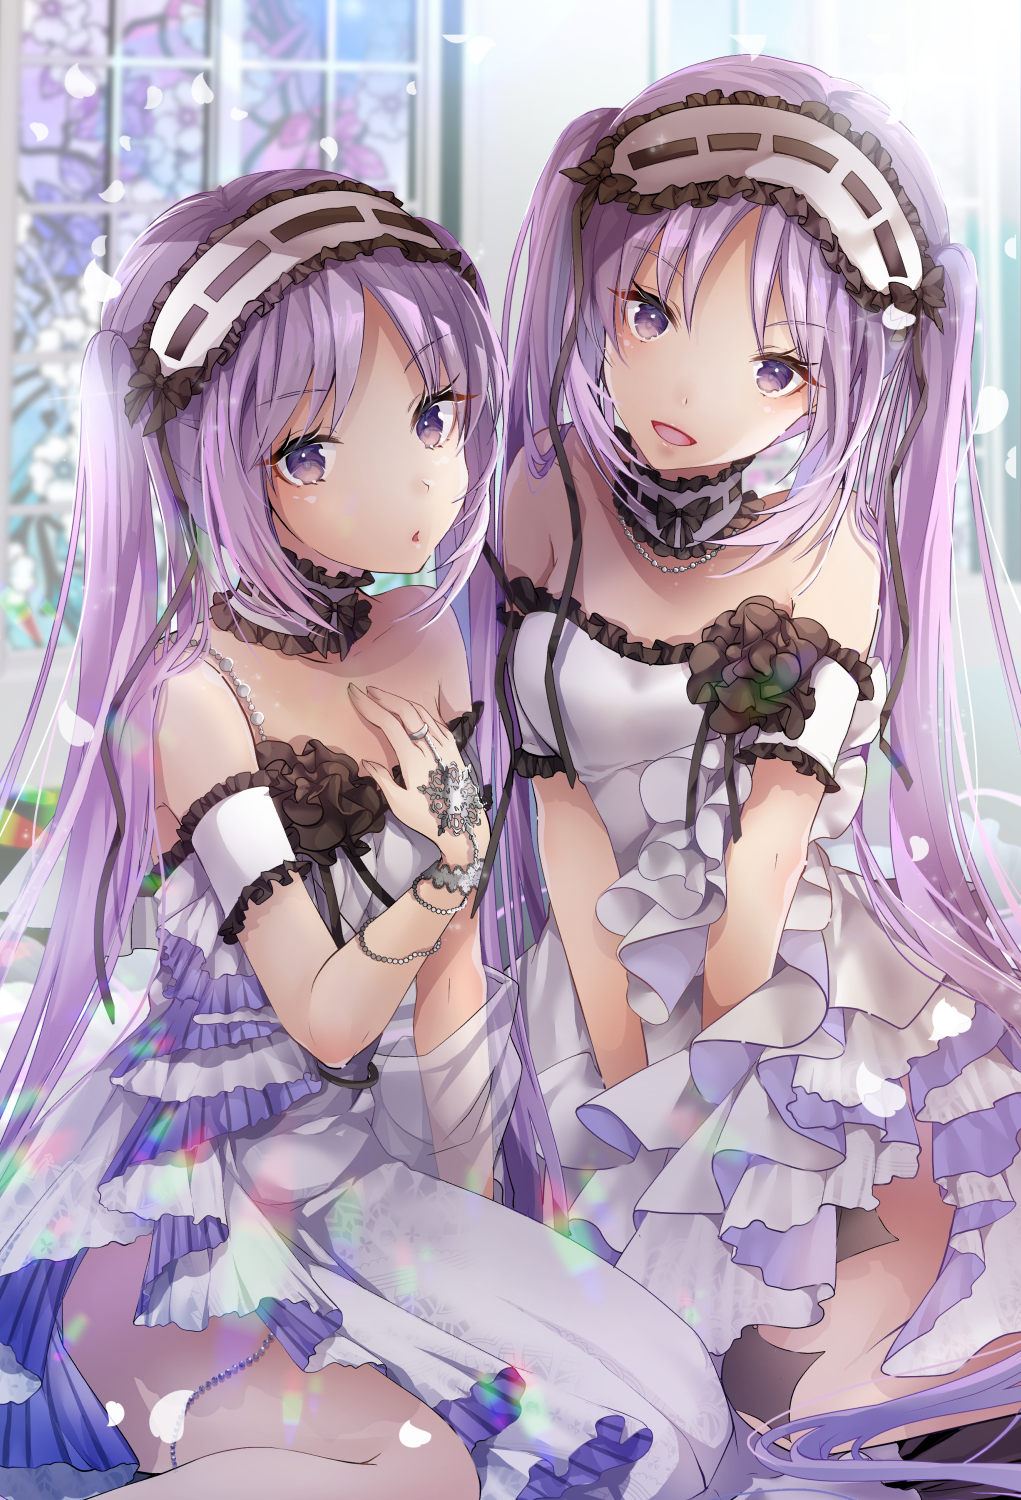 2girls akatsuki_hijiri bangs bare_shoulders blush breasts choker dress euryale eyebrows_visible_through_hair fate/grand_order fate/hollow_ataraxia fate_(series) hairband headdress highres jewelry lolita_hairband long_hair looking_at_viewer multiple_girls open_mouth purple_hair ribbon siblings sisters smile stheno strapless twins twintails very_long_hair violet_eyes white_dress